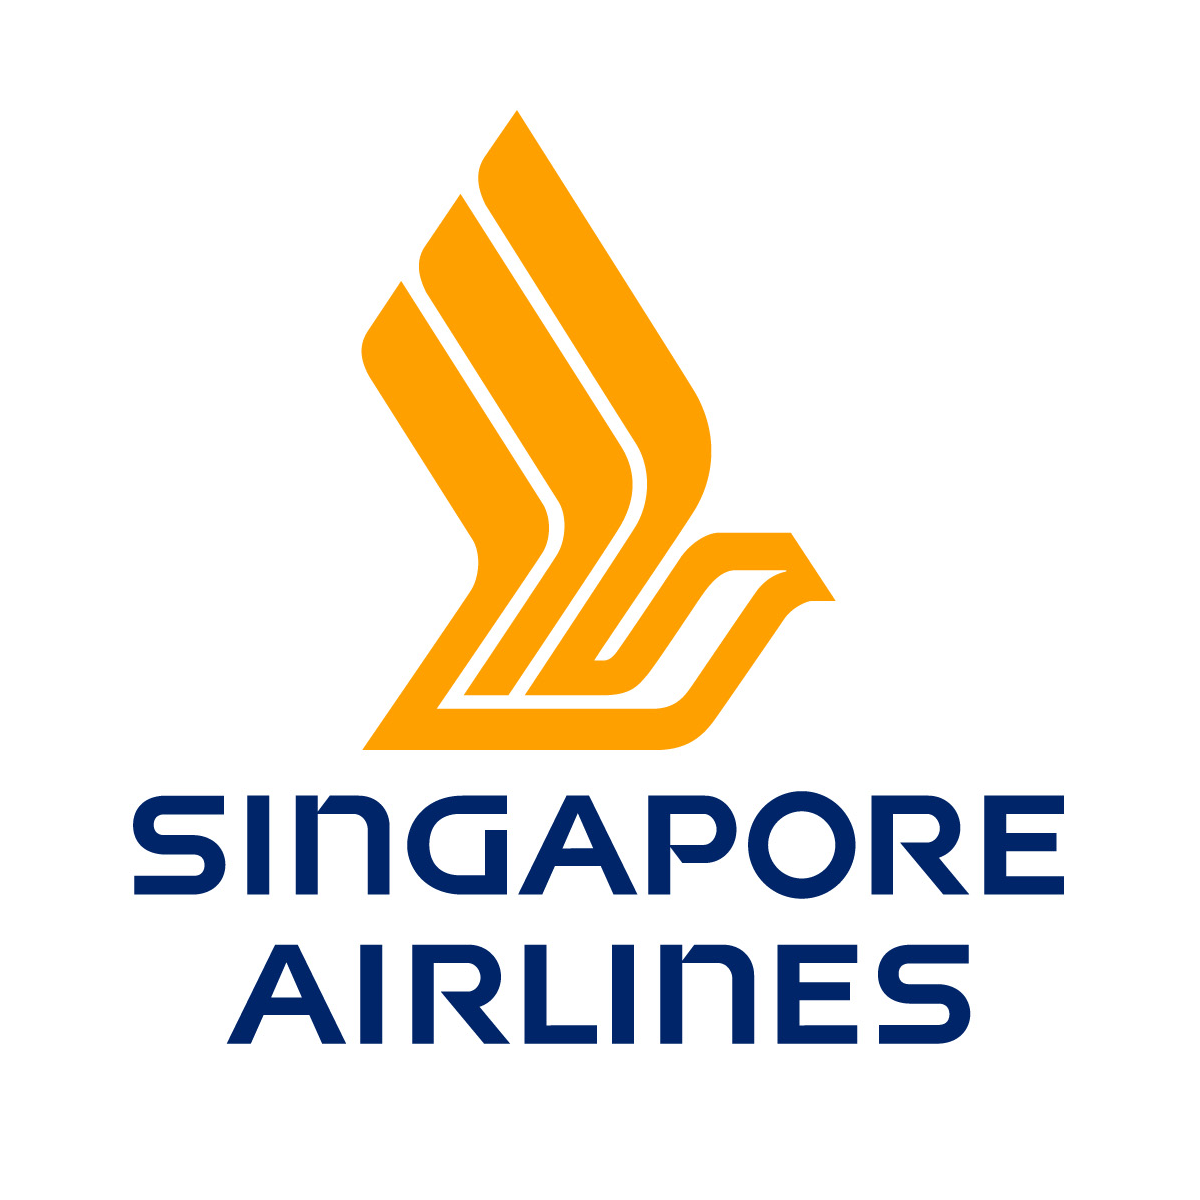 Singapore Airlines Logo - Singapore Airlines Vector PNG